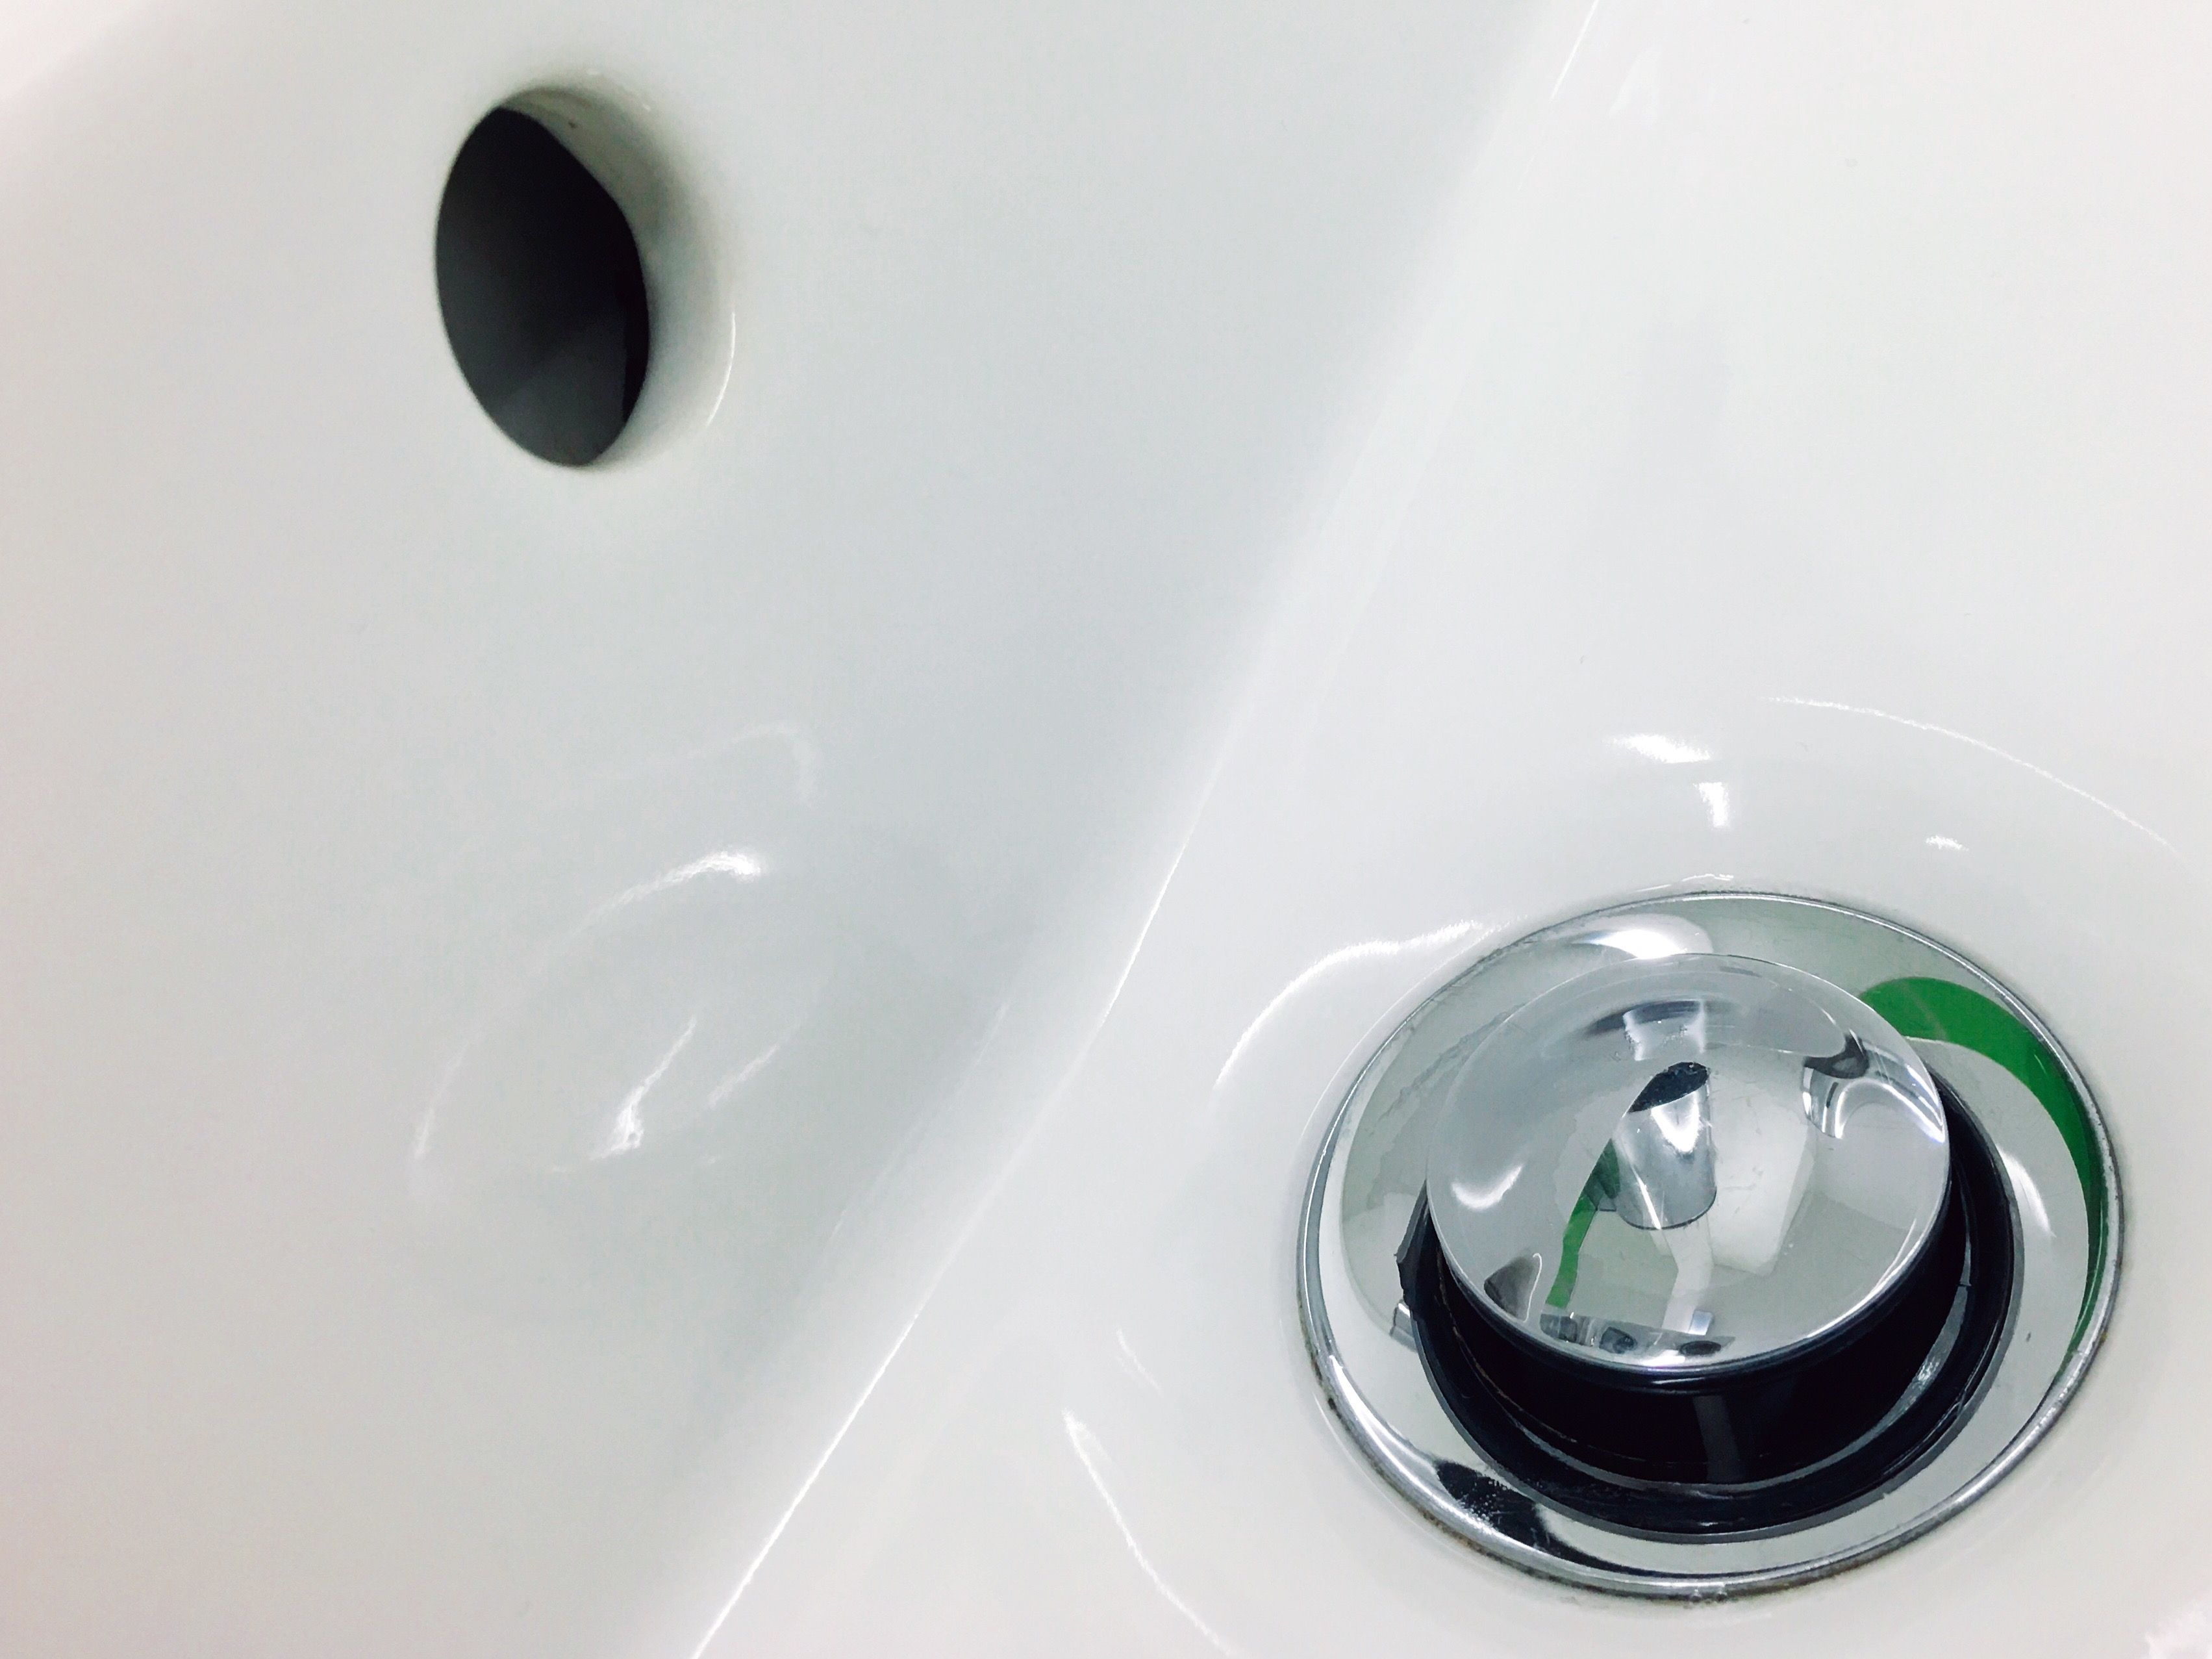 How To Install A Stopper Drain Fitting In A Bathtub